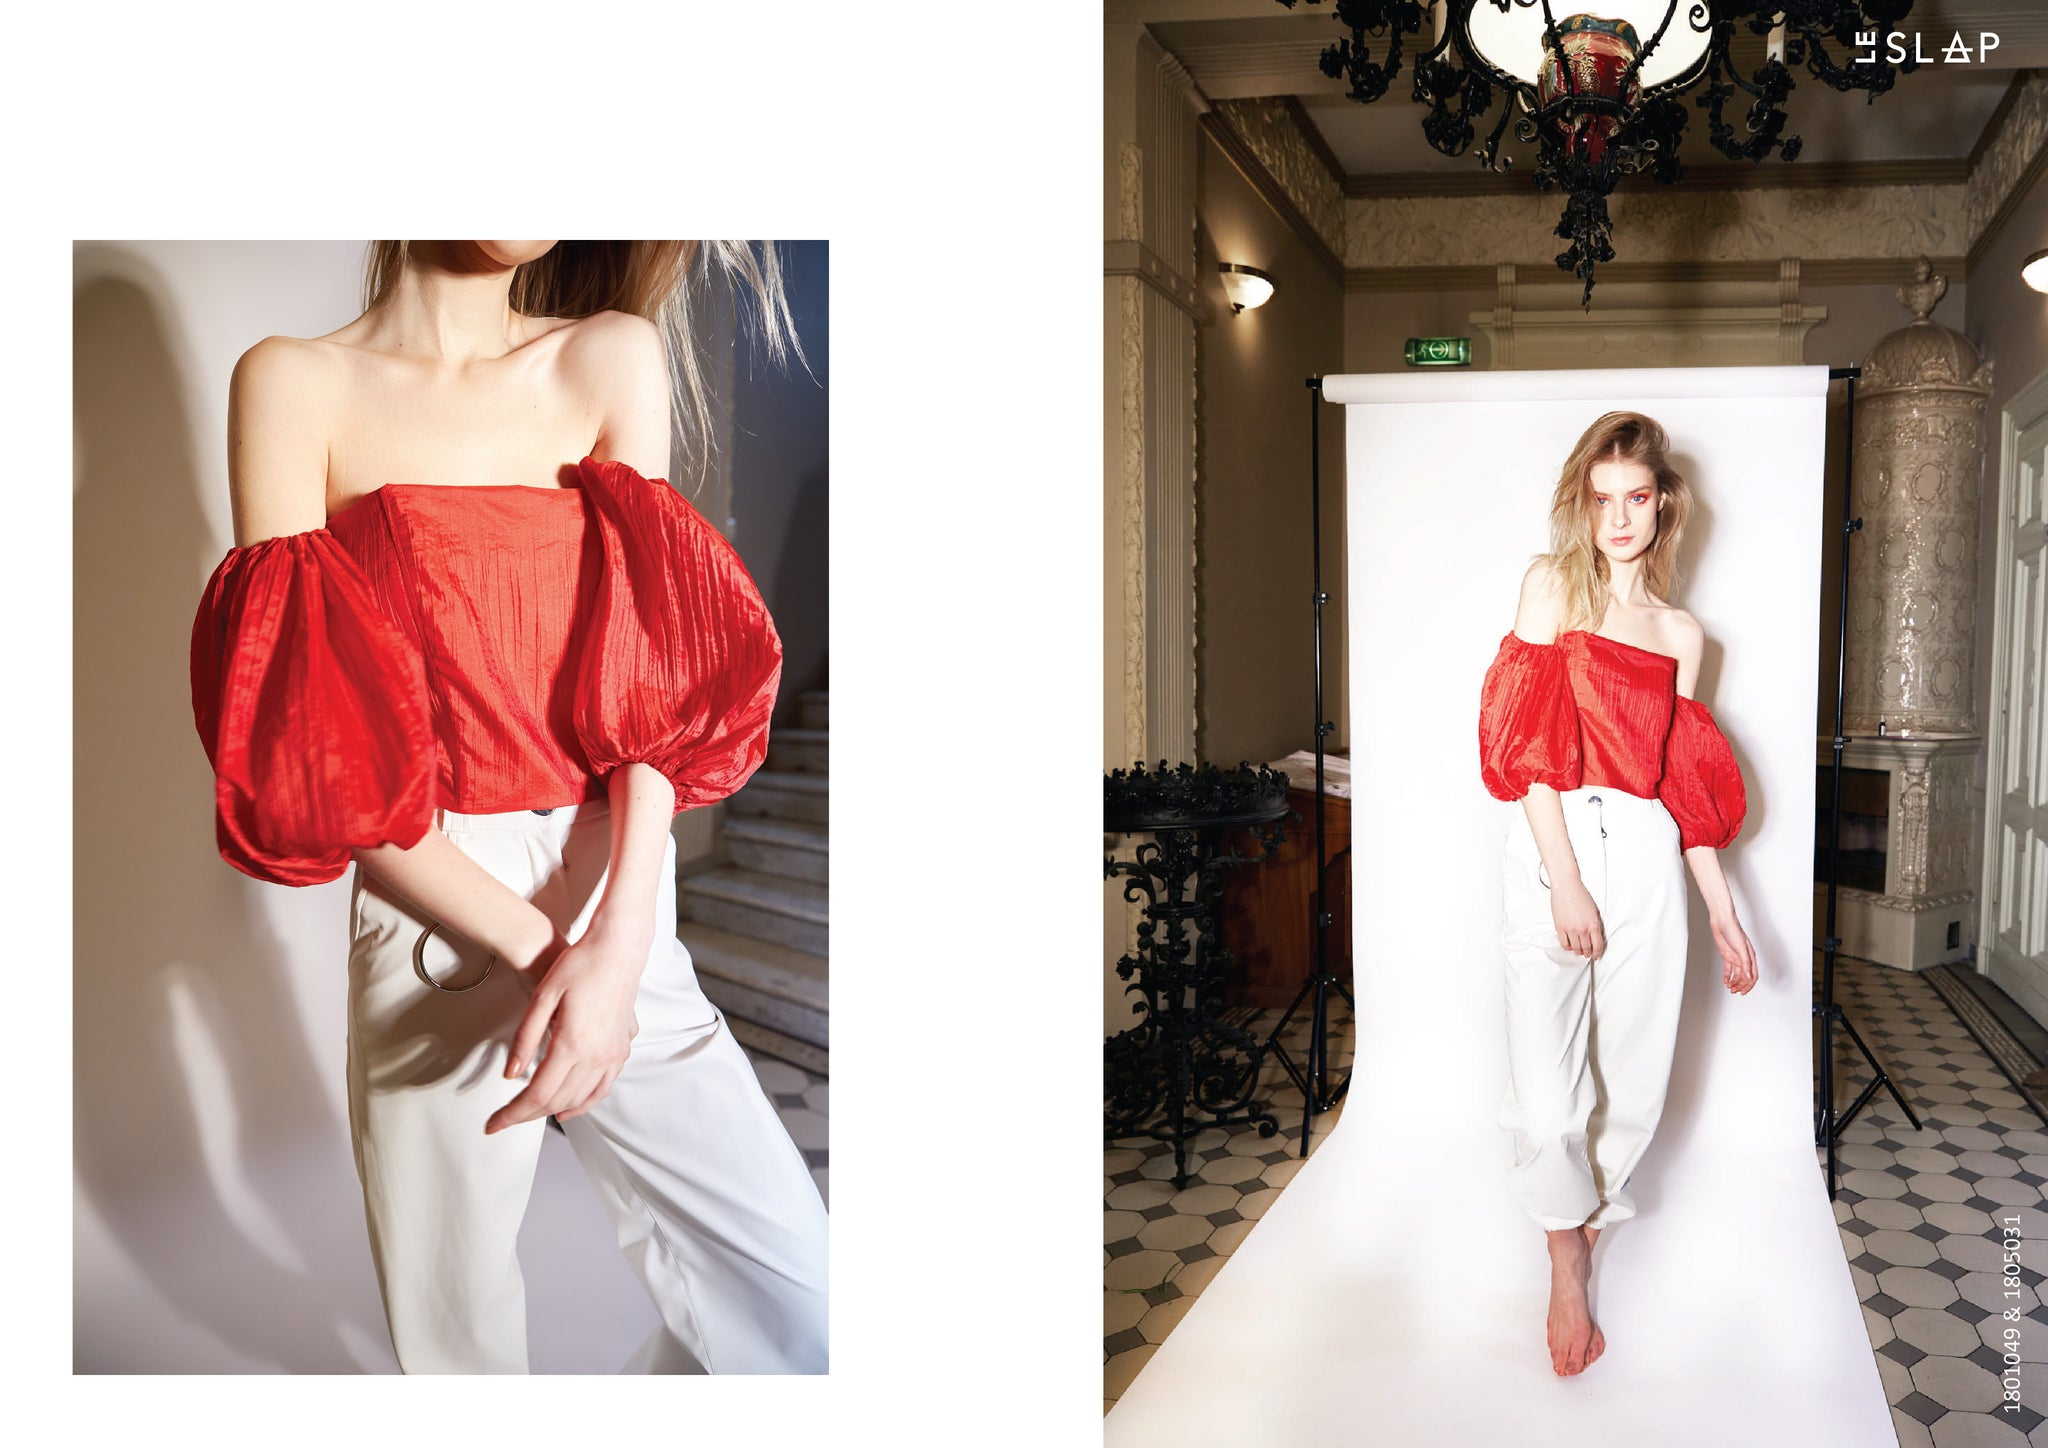 Le SLAP clothing brand lookbook statement fashion photoshoot  Red volume sleeve top and White wide eco leather pants